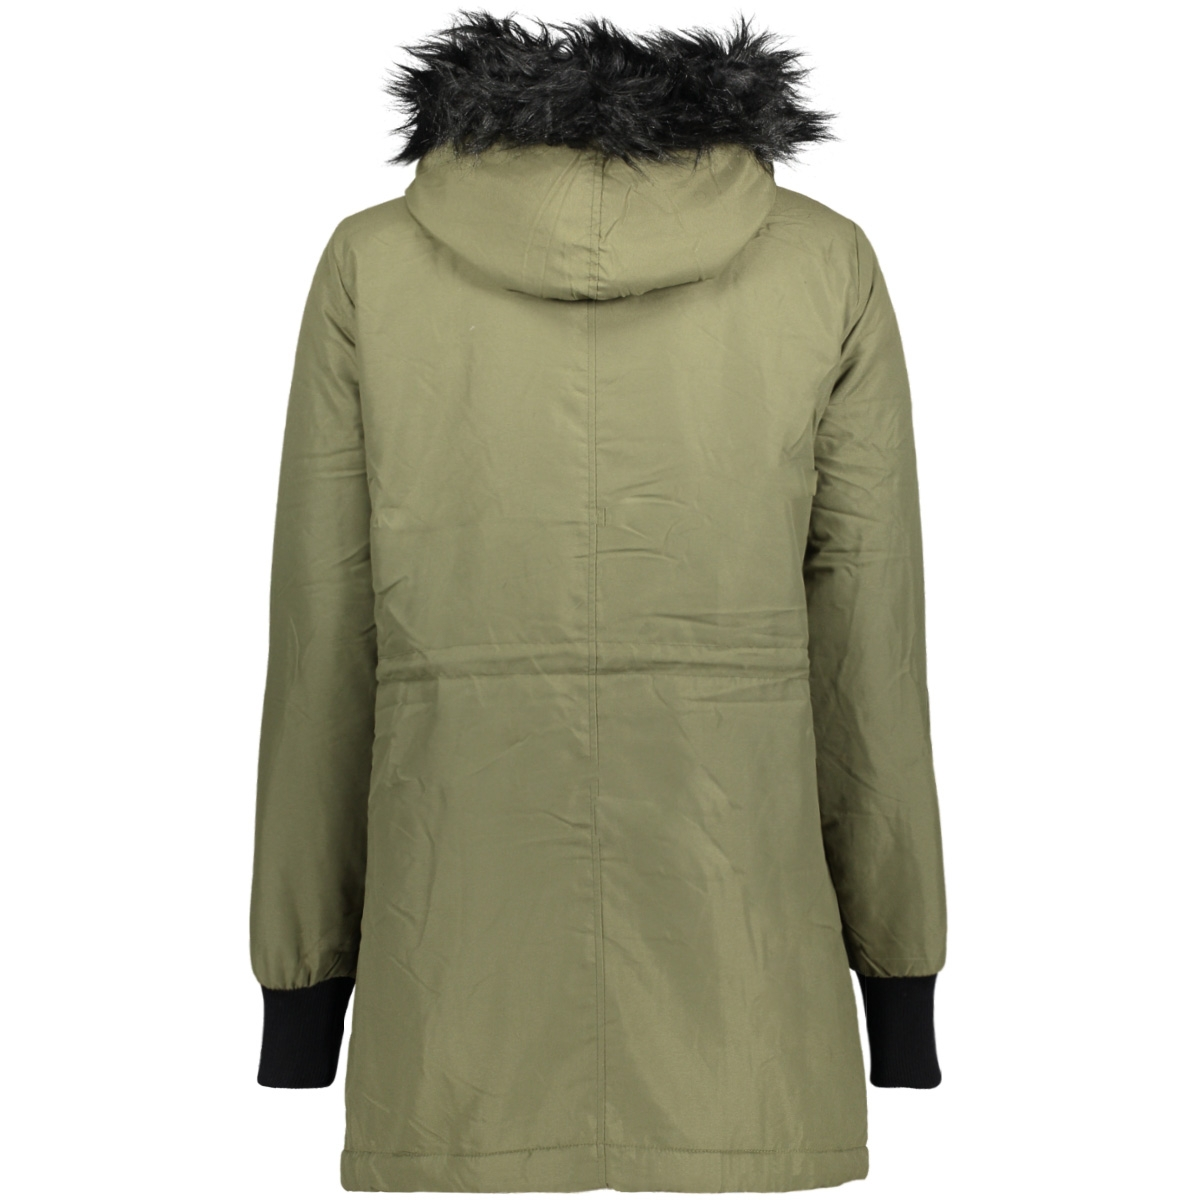 nmkarma l/s parka jacket - 4b 10179046 noisy may jas ivy green